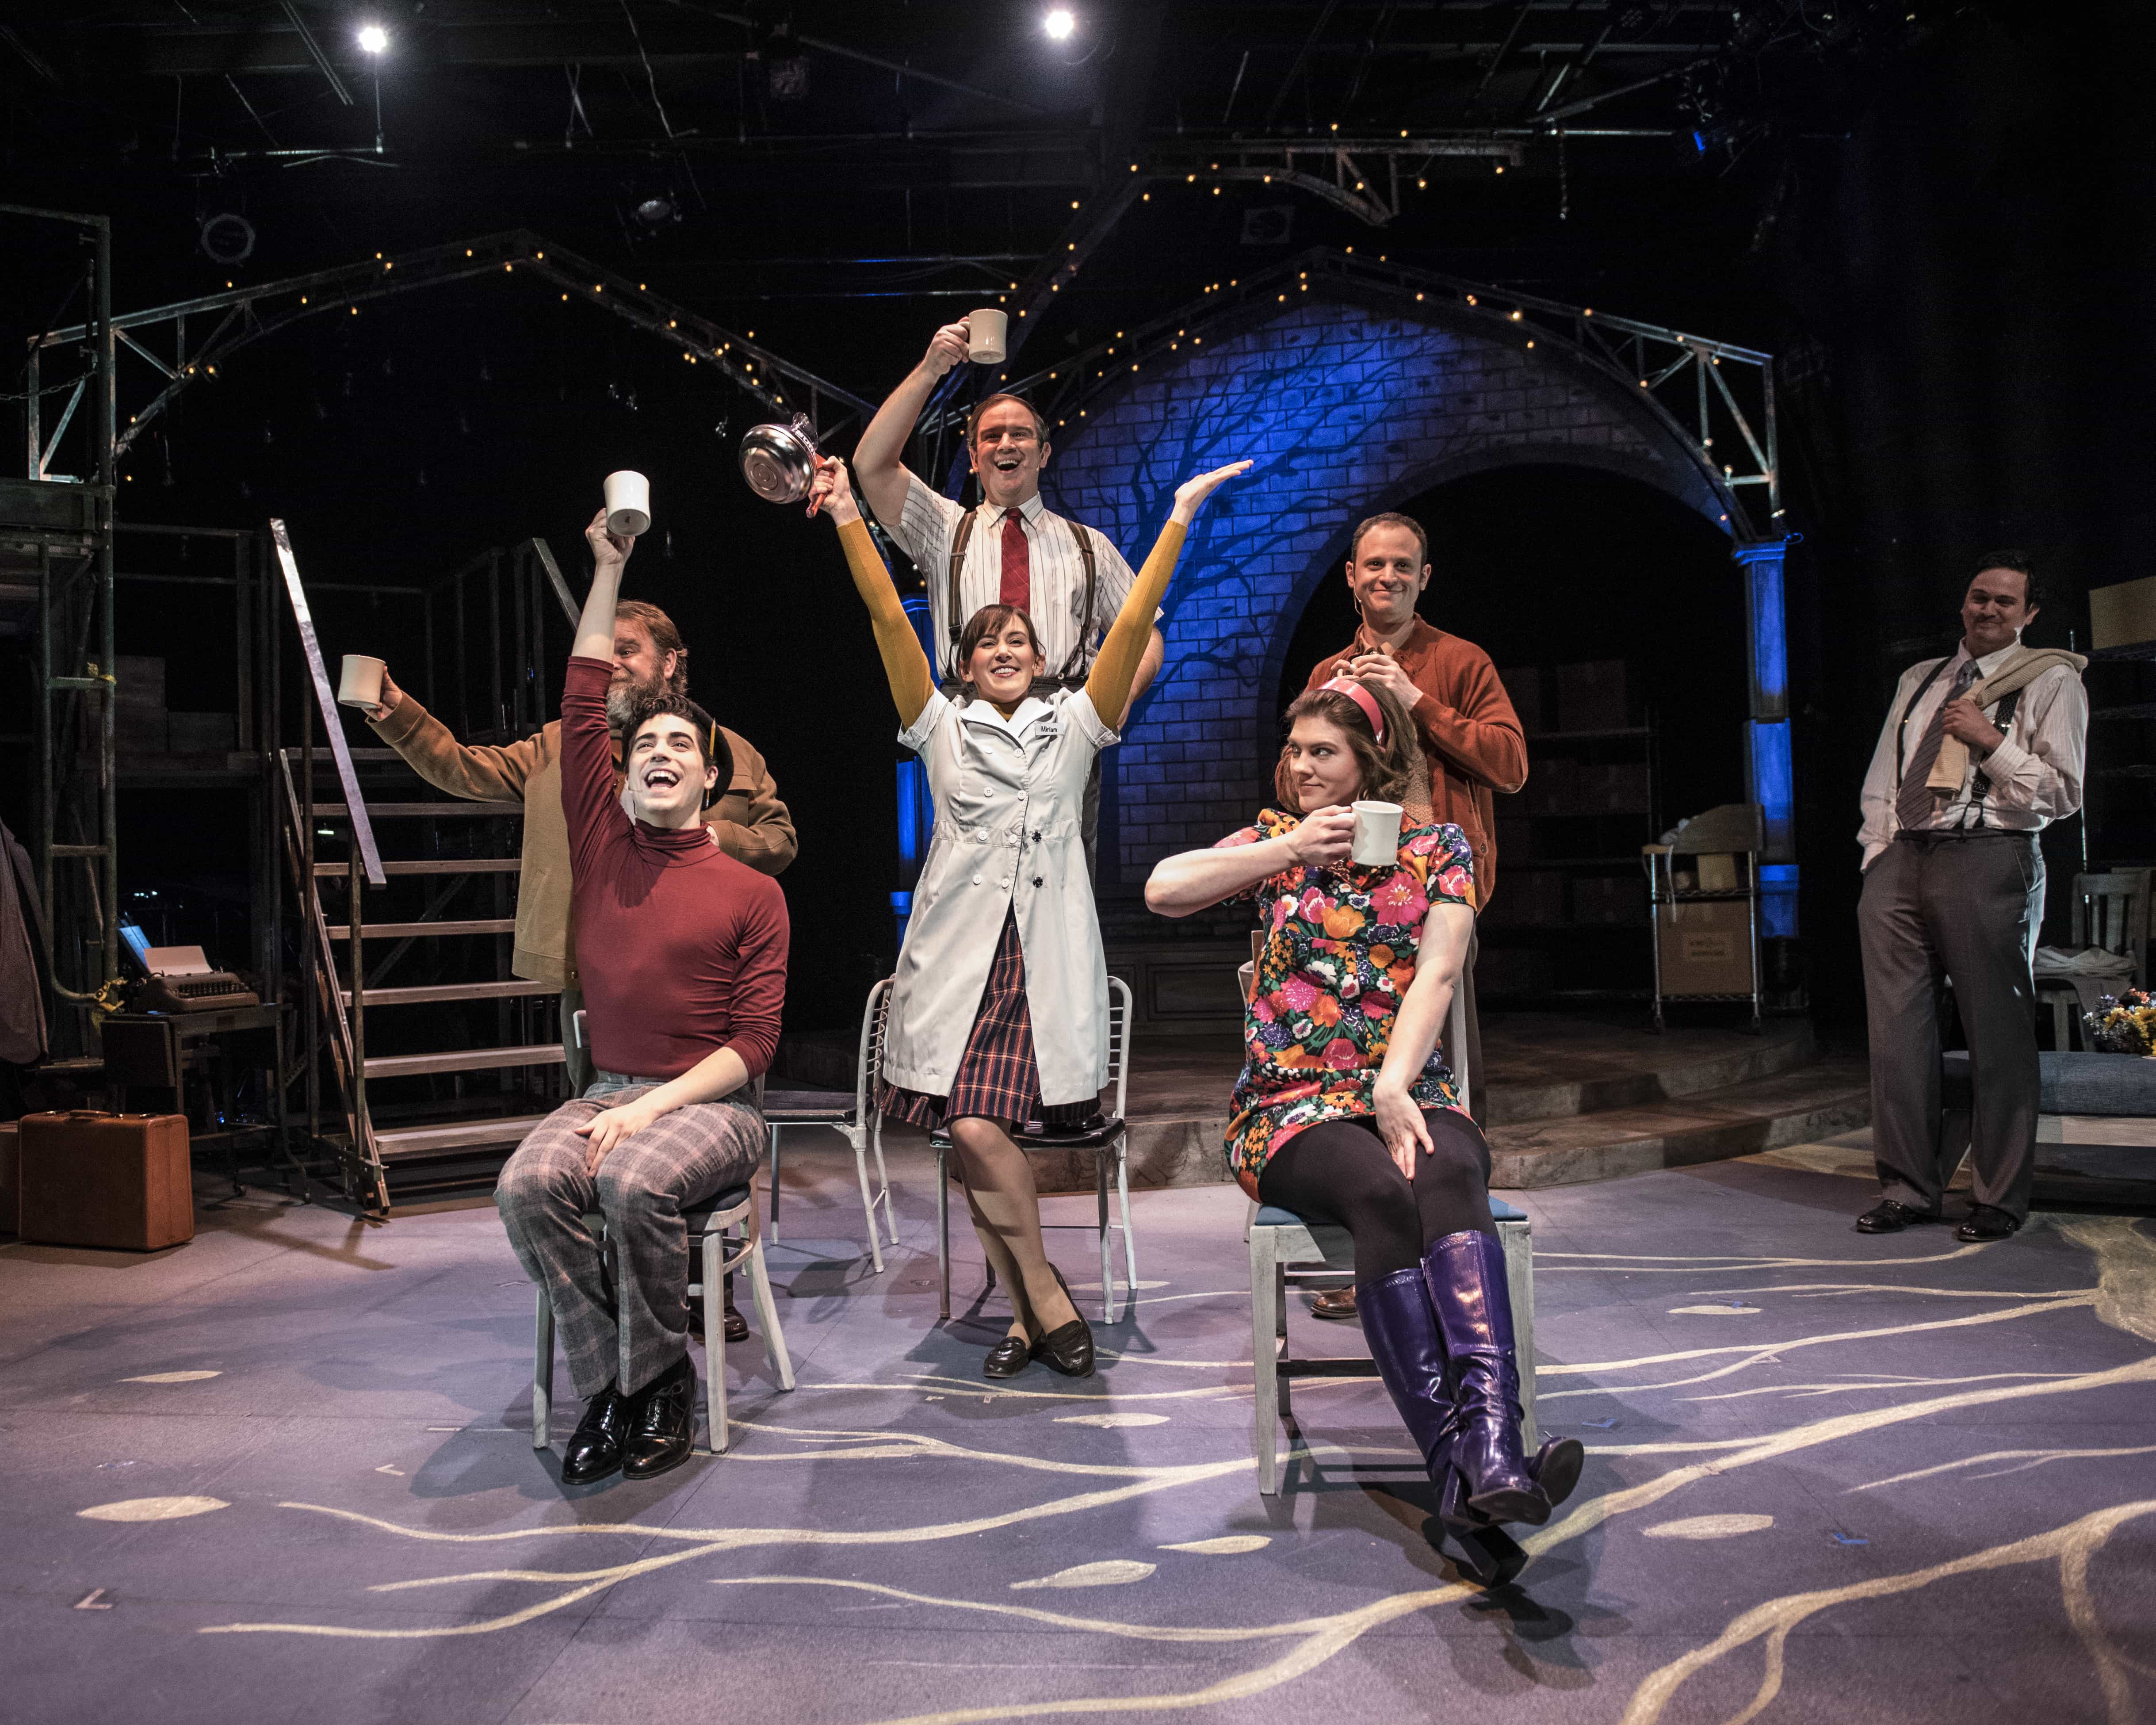 """Sasha Olinick, Tiziano D'Affuso, Ryan Manning, Caroline Wolfson, Aaron Bliden, Farrell Parker, and Jamie Smithson in """"Fly By Night"""" at 1st Stage. Photo by Teresa Castracane."""